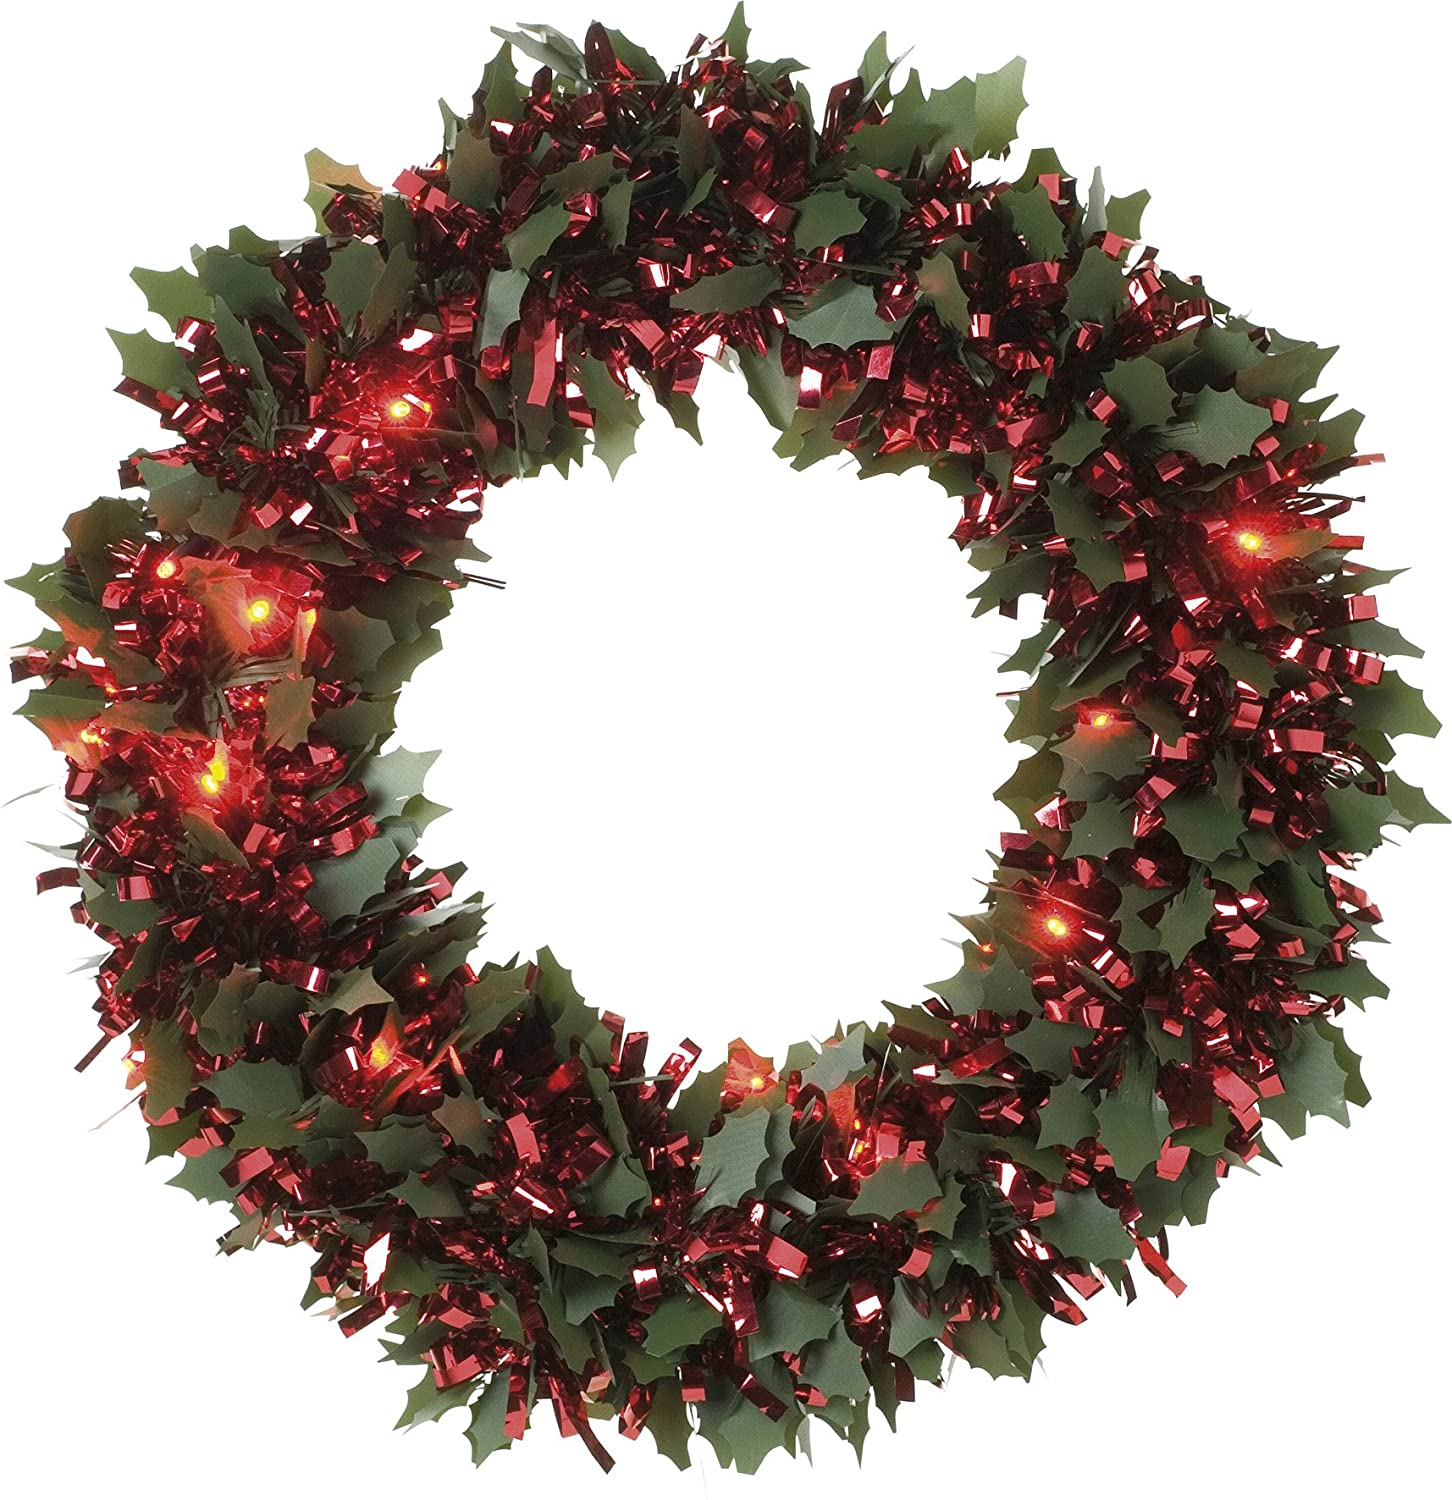 Festive 30cm die cut holly dark pine and red chunky loop tinsel wreath with 25 red battery operated led lights Festive Productions 268504